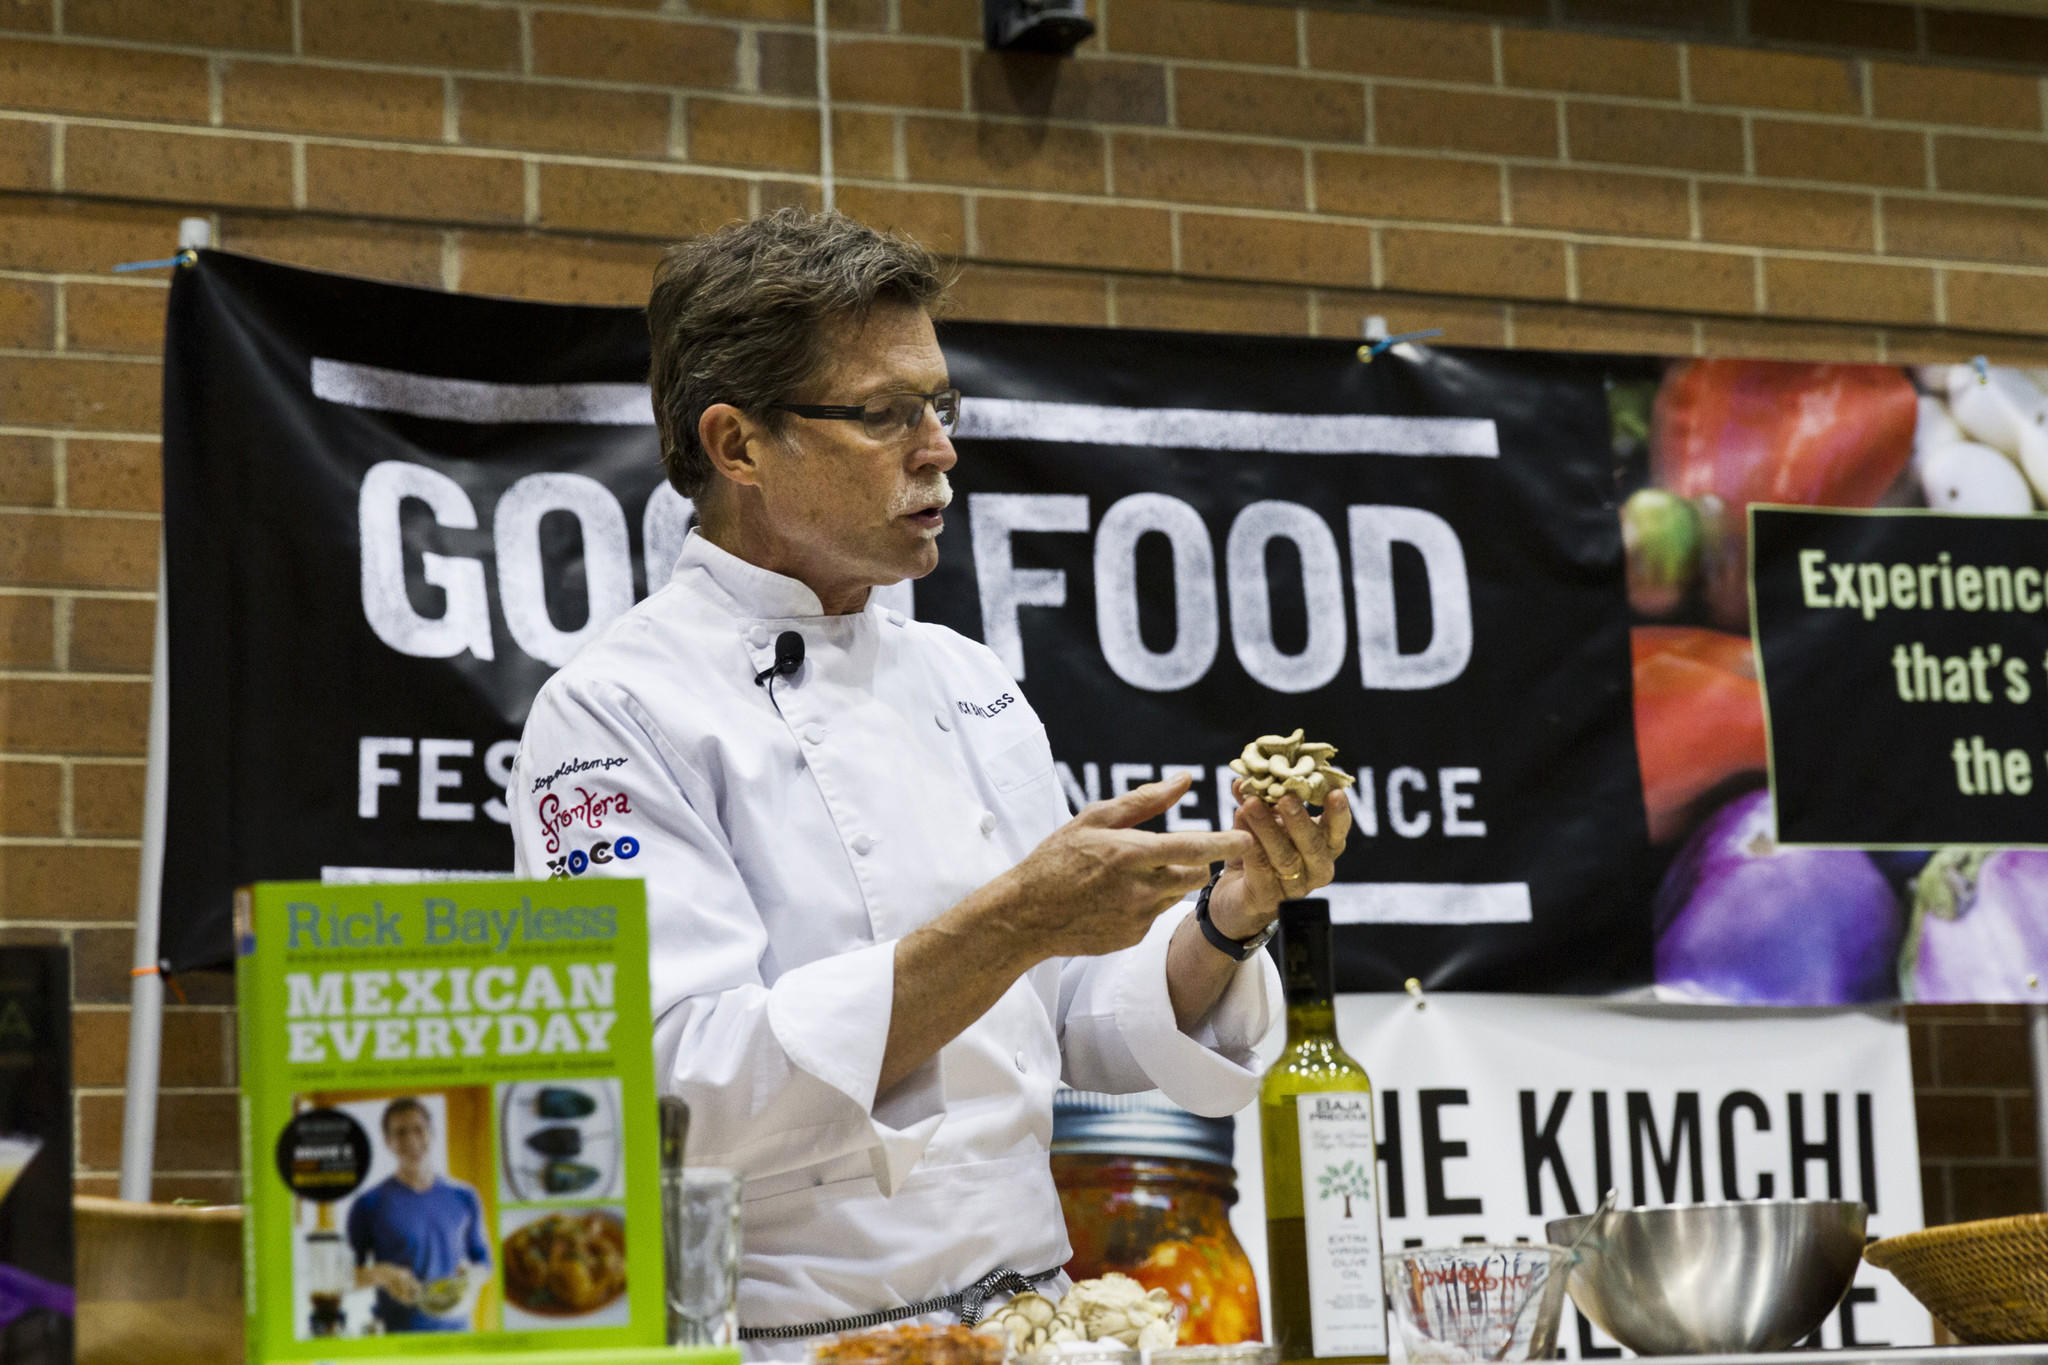 Rick Bayless presents at the 2013 Good Food Festival.